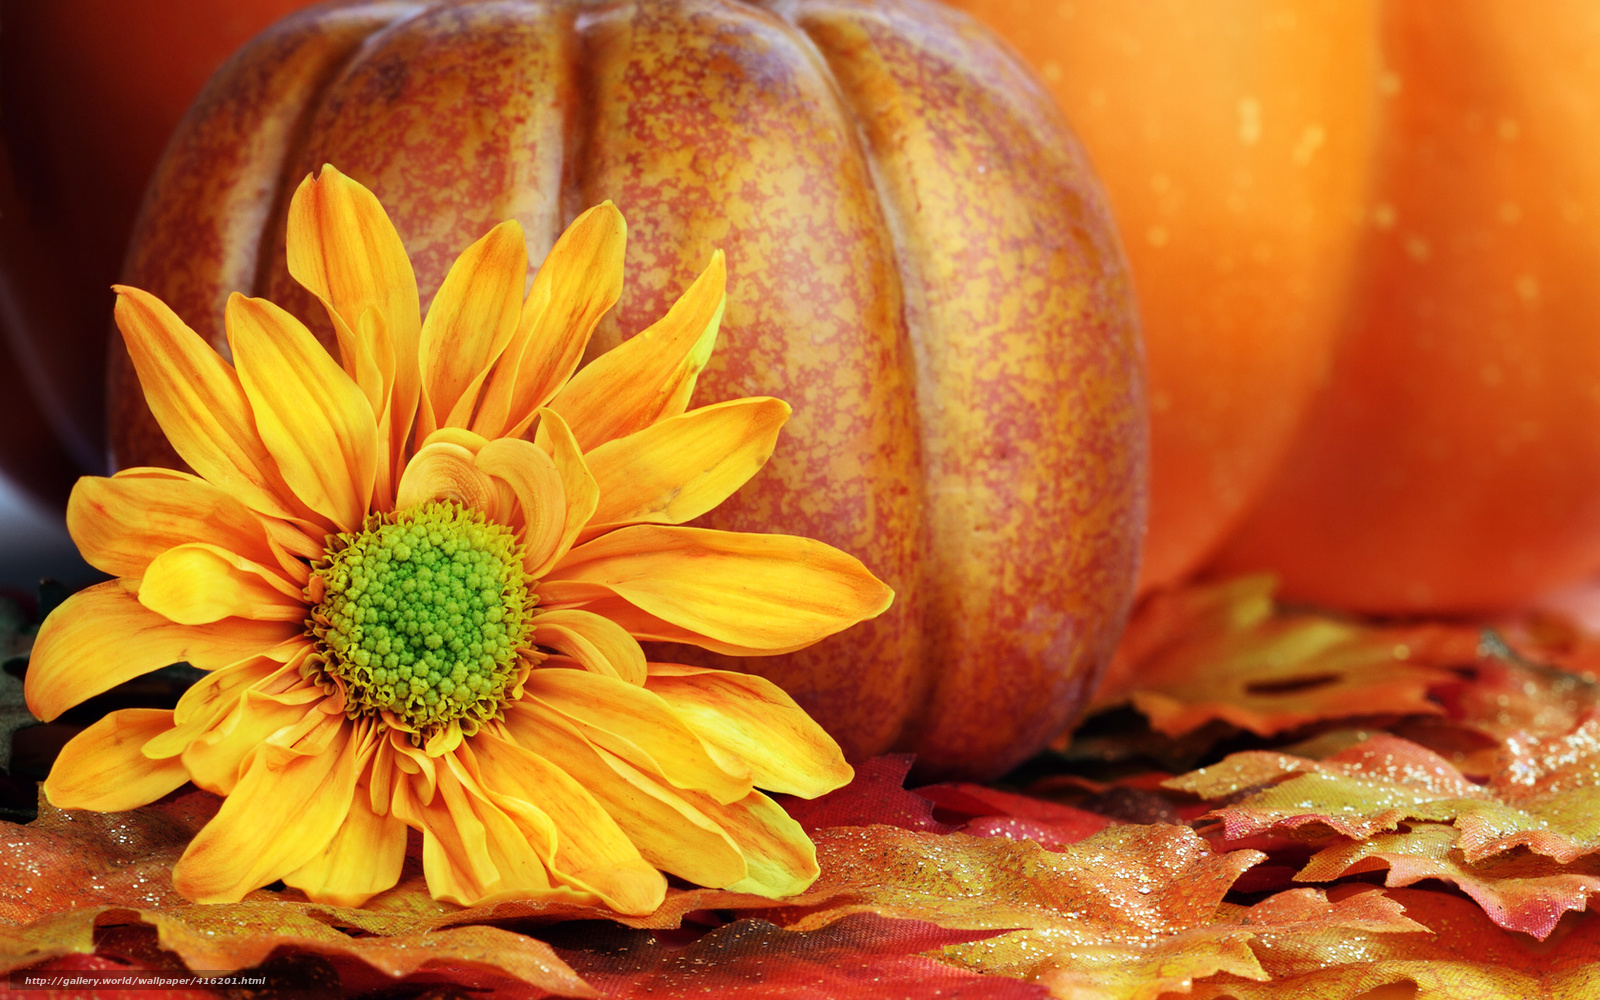 Download Wallpaper Flower Yellow Petals Pumpkin Free Desktop In The Resolution 1680x1050 Picture No416201